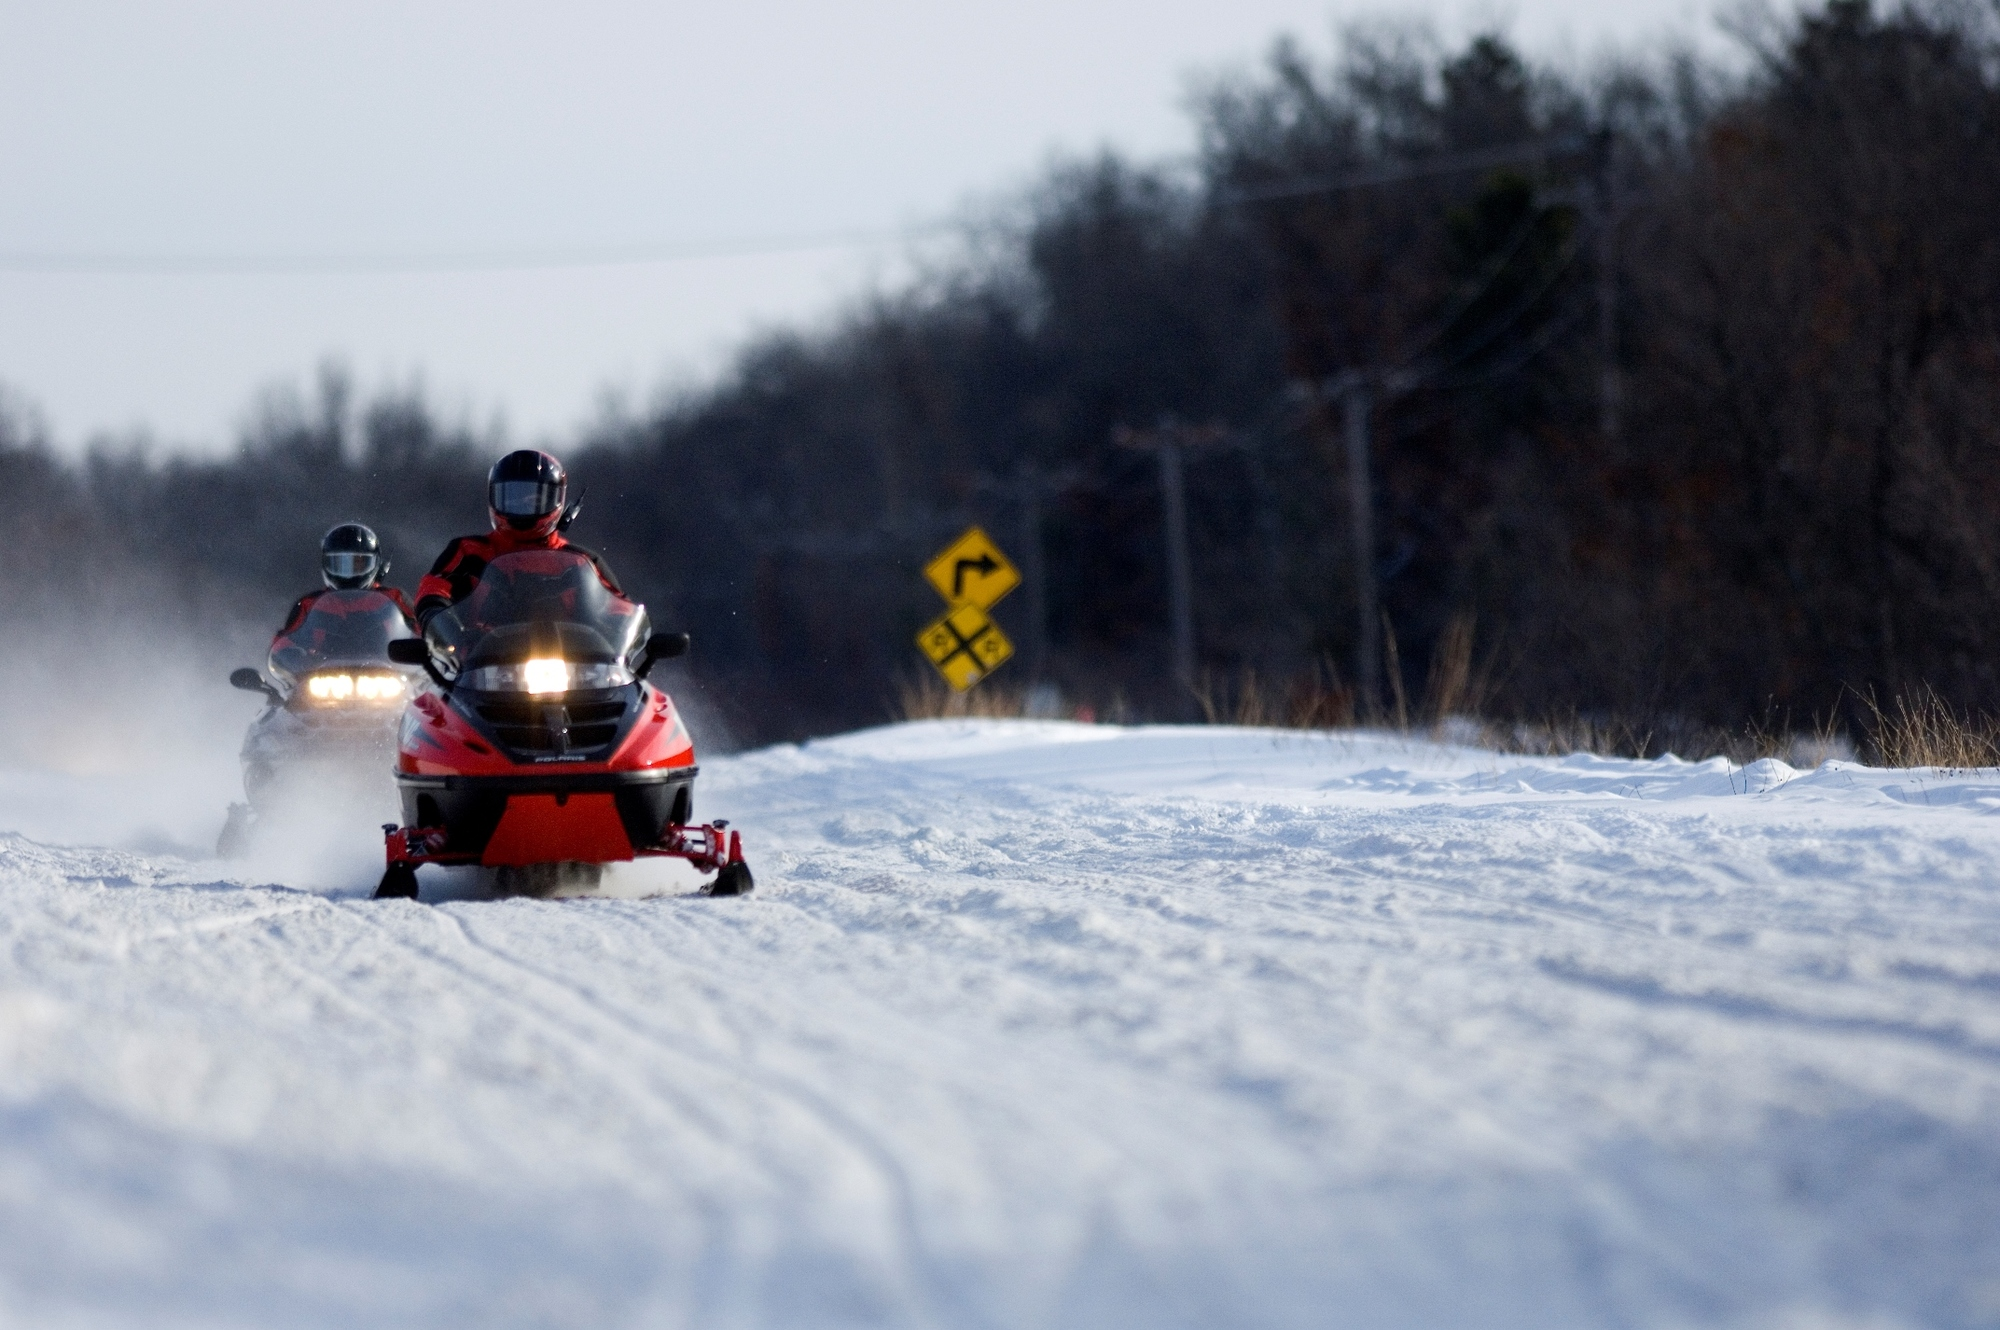 Michigan's snowmobile trails are among the finest anywhere.